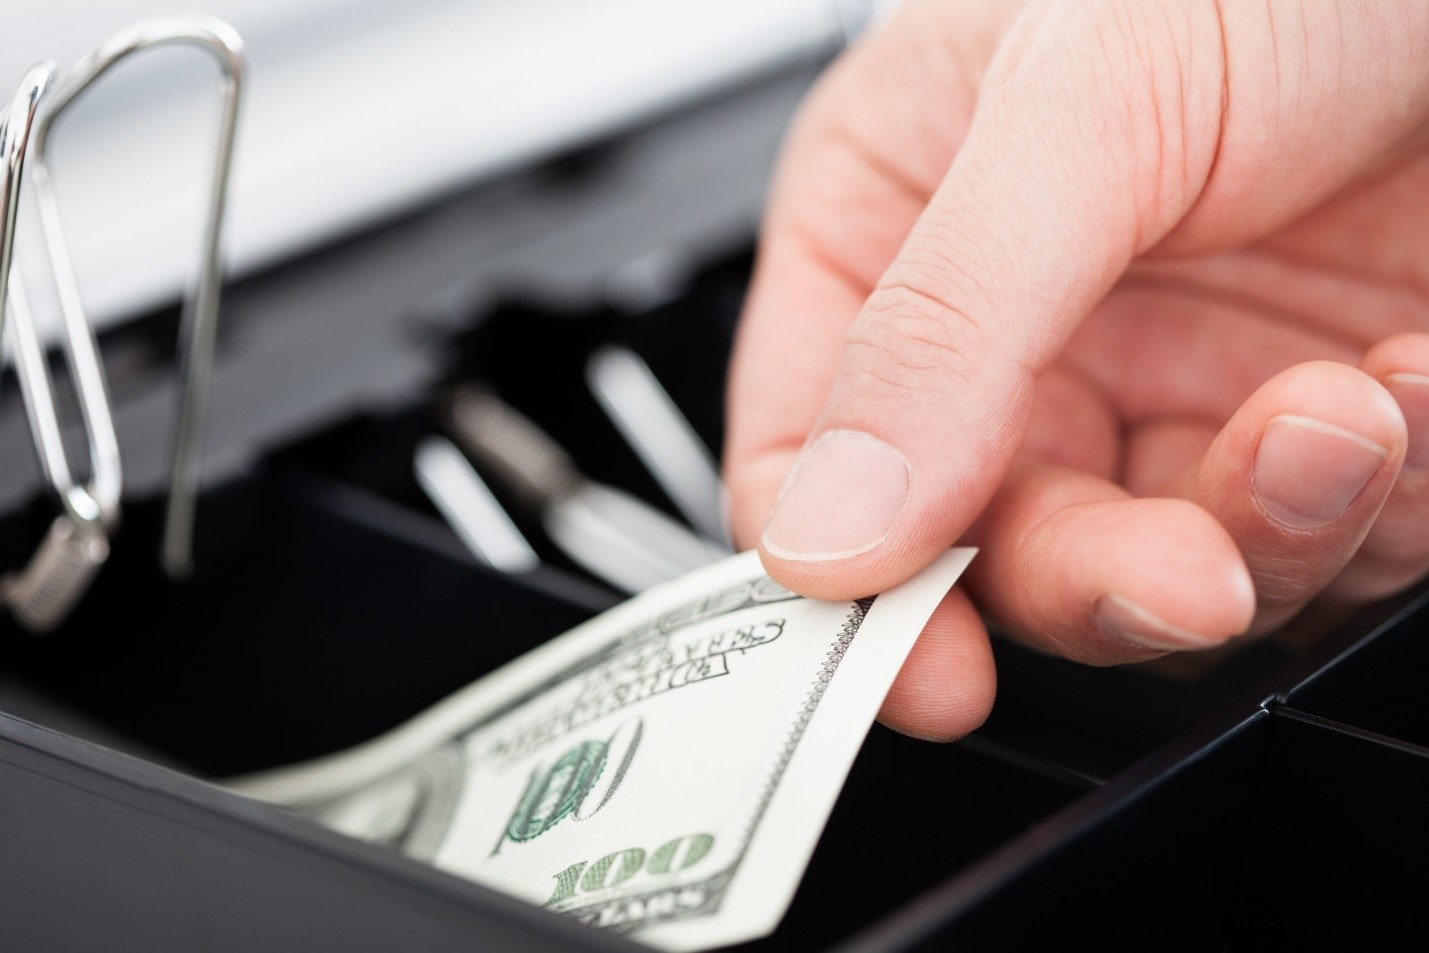 Employee theft Investigations - $50 billion dollars are stolen each year from U.S. Businesses by employees. If you have reason to believe this is an issue for your business, allow our team to investigate. We have assisted clients save thousands of dollars by eliminating employees who steal.